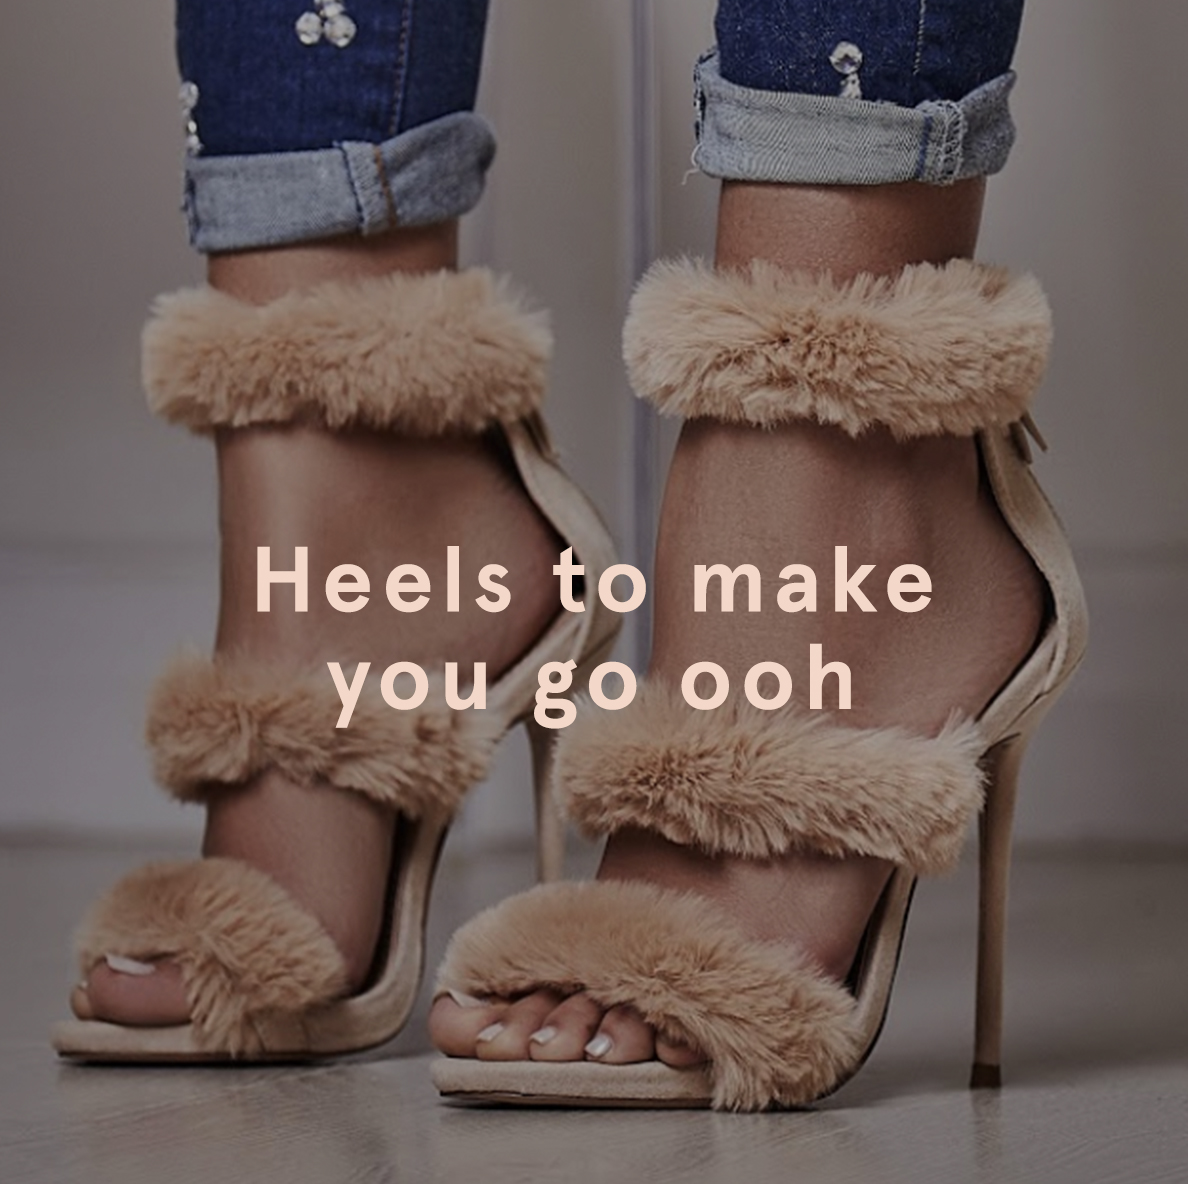 Heels to Make You Go Ooh Ego Hadea Fluffy Heel in Nude Faux Suede £34.99